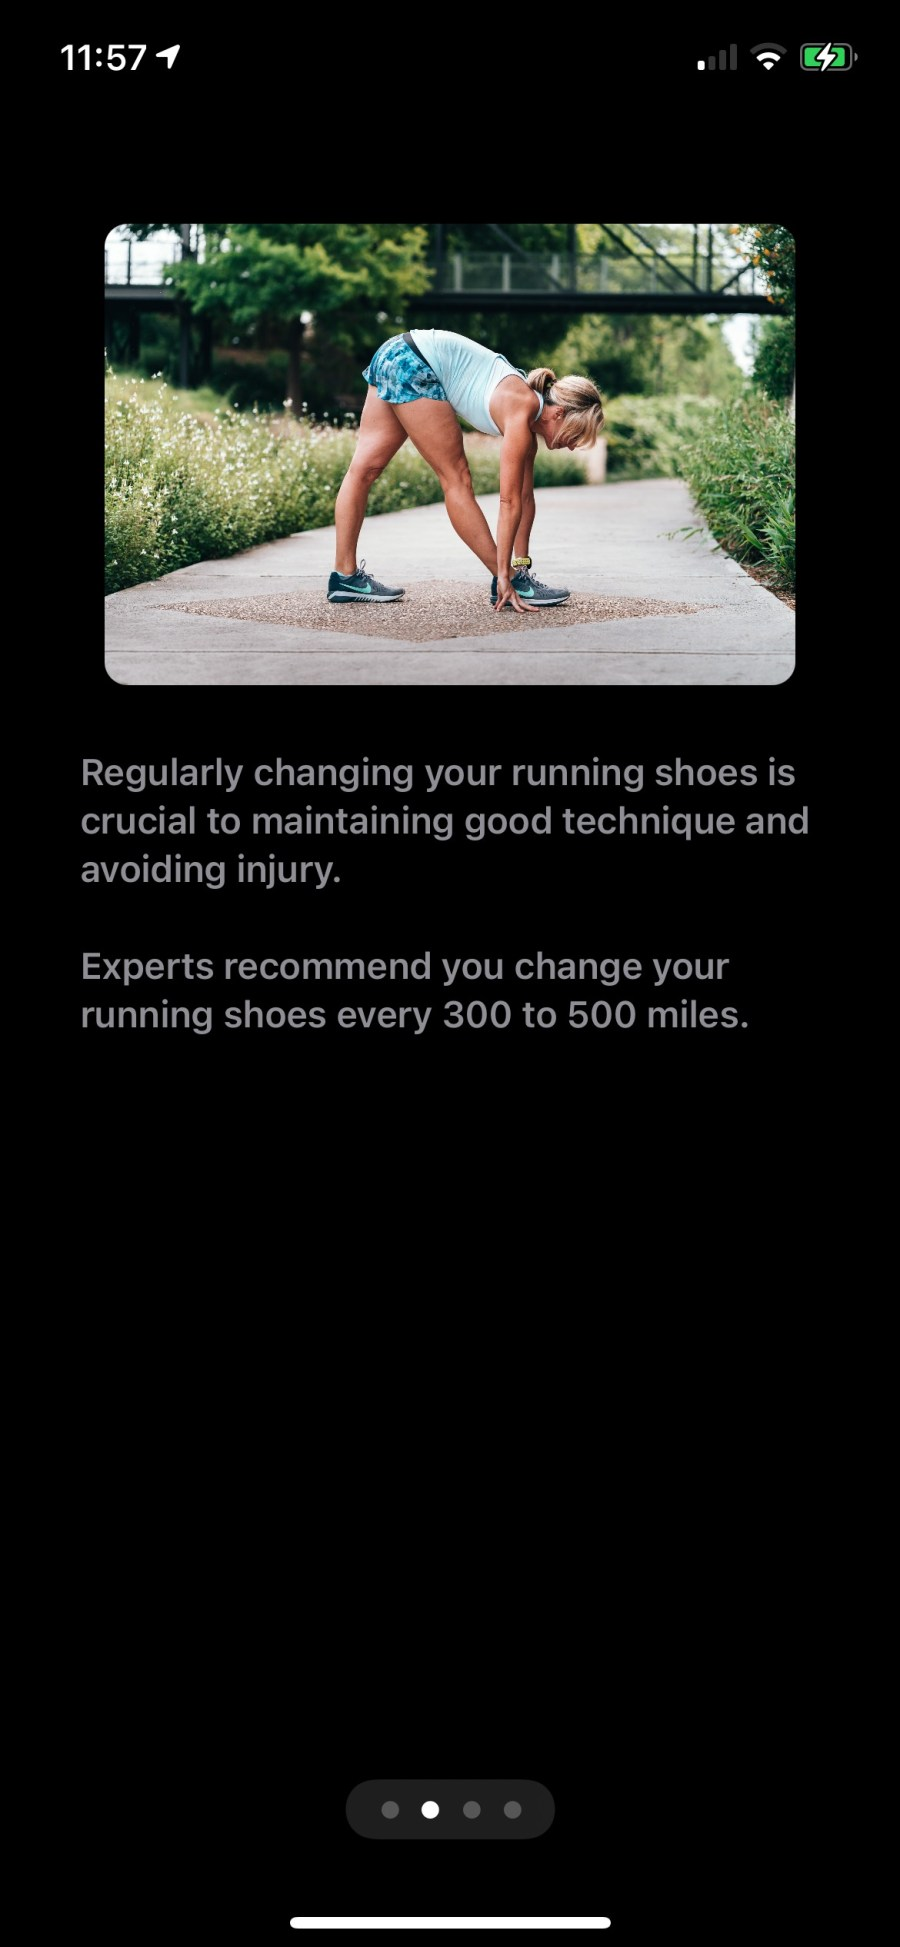 Regularly changing your running shoes is crucial to maintaining good technique and avoiding injury.